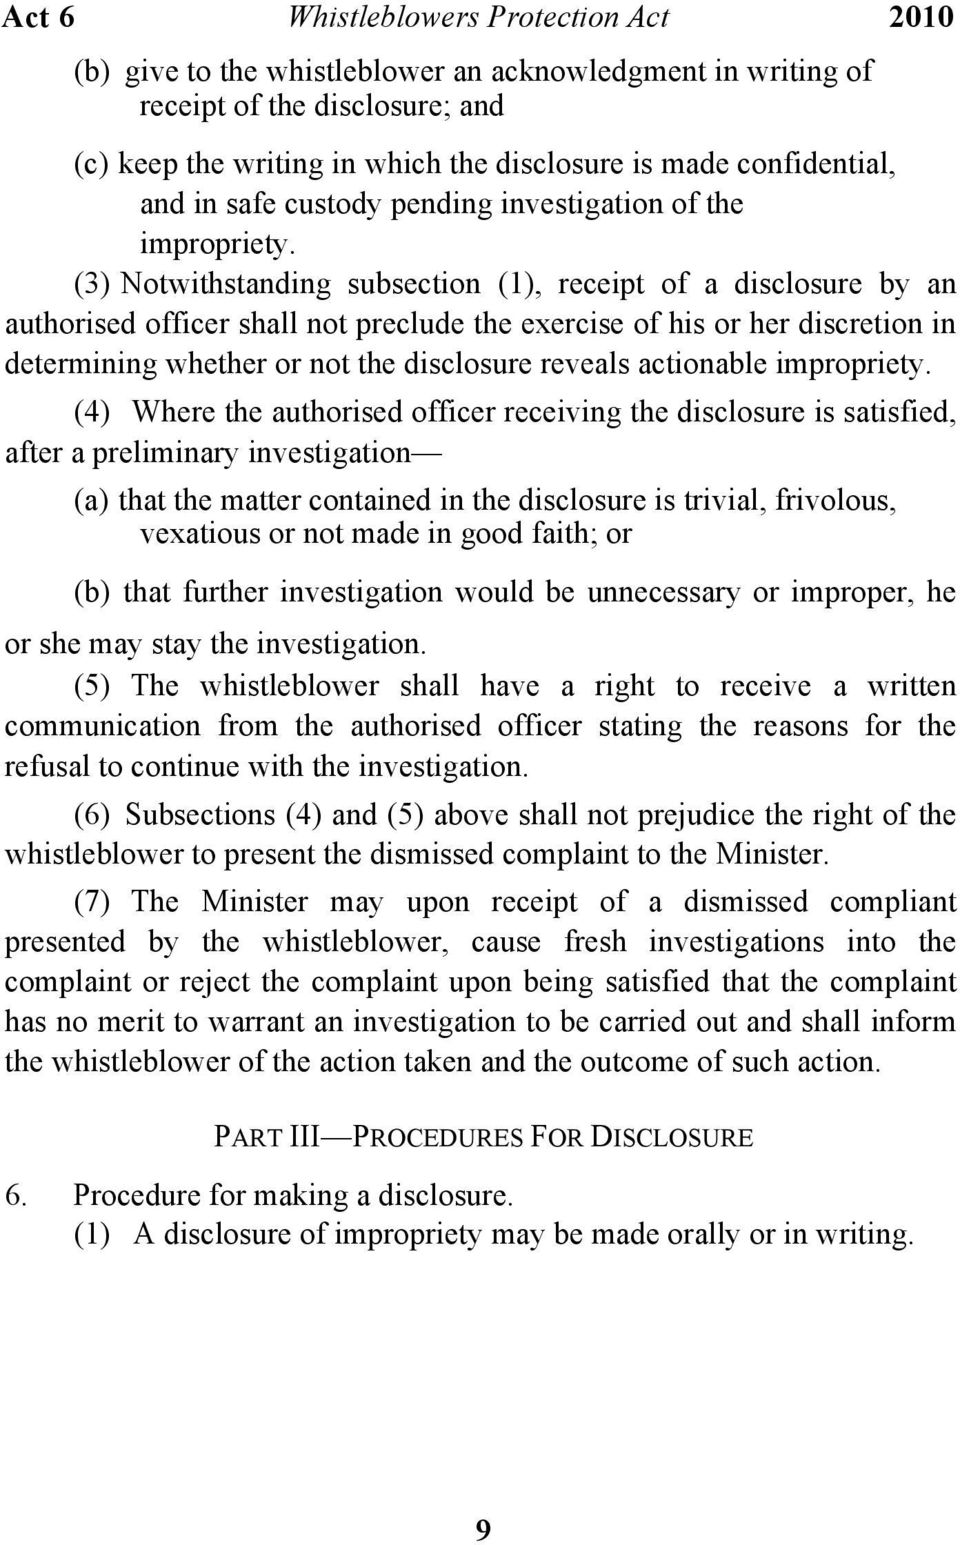 (3) Notwithstanding subsection (1), receipt of a disclosure by an authorised officer shall not preclude the exercise of his or her discretion in determining whether or not the disclosure reveals